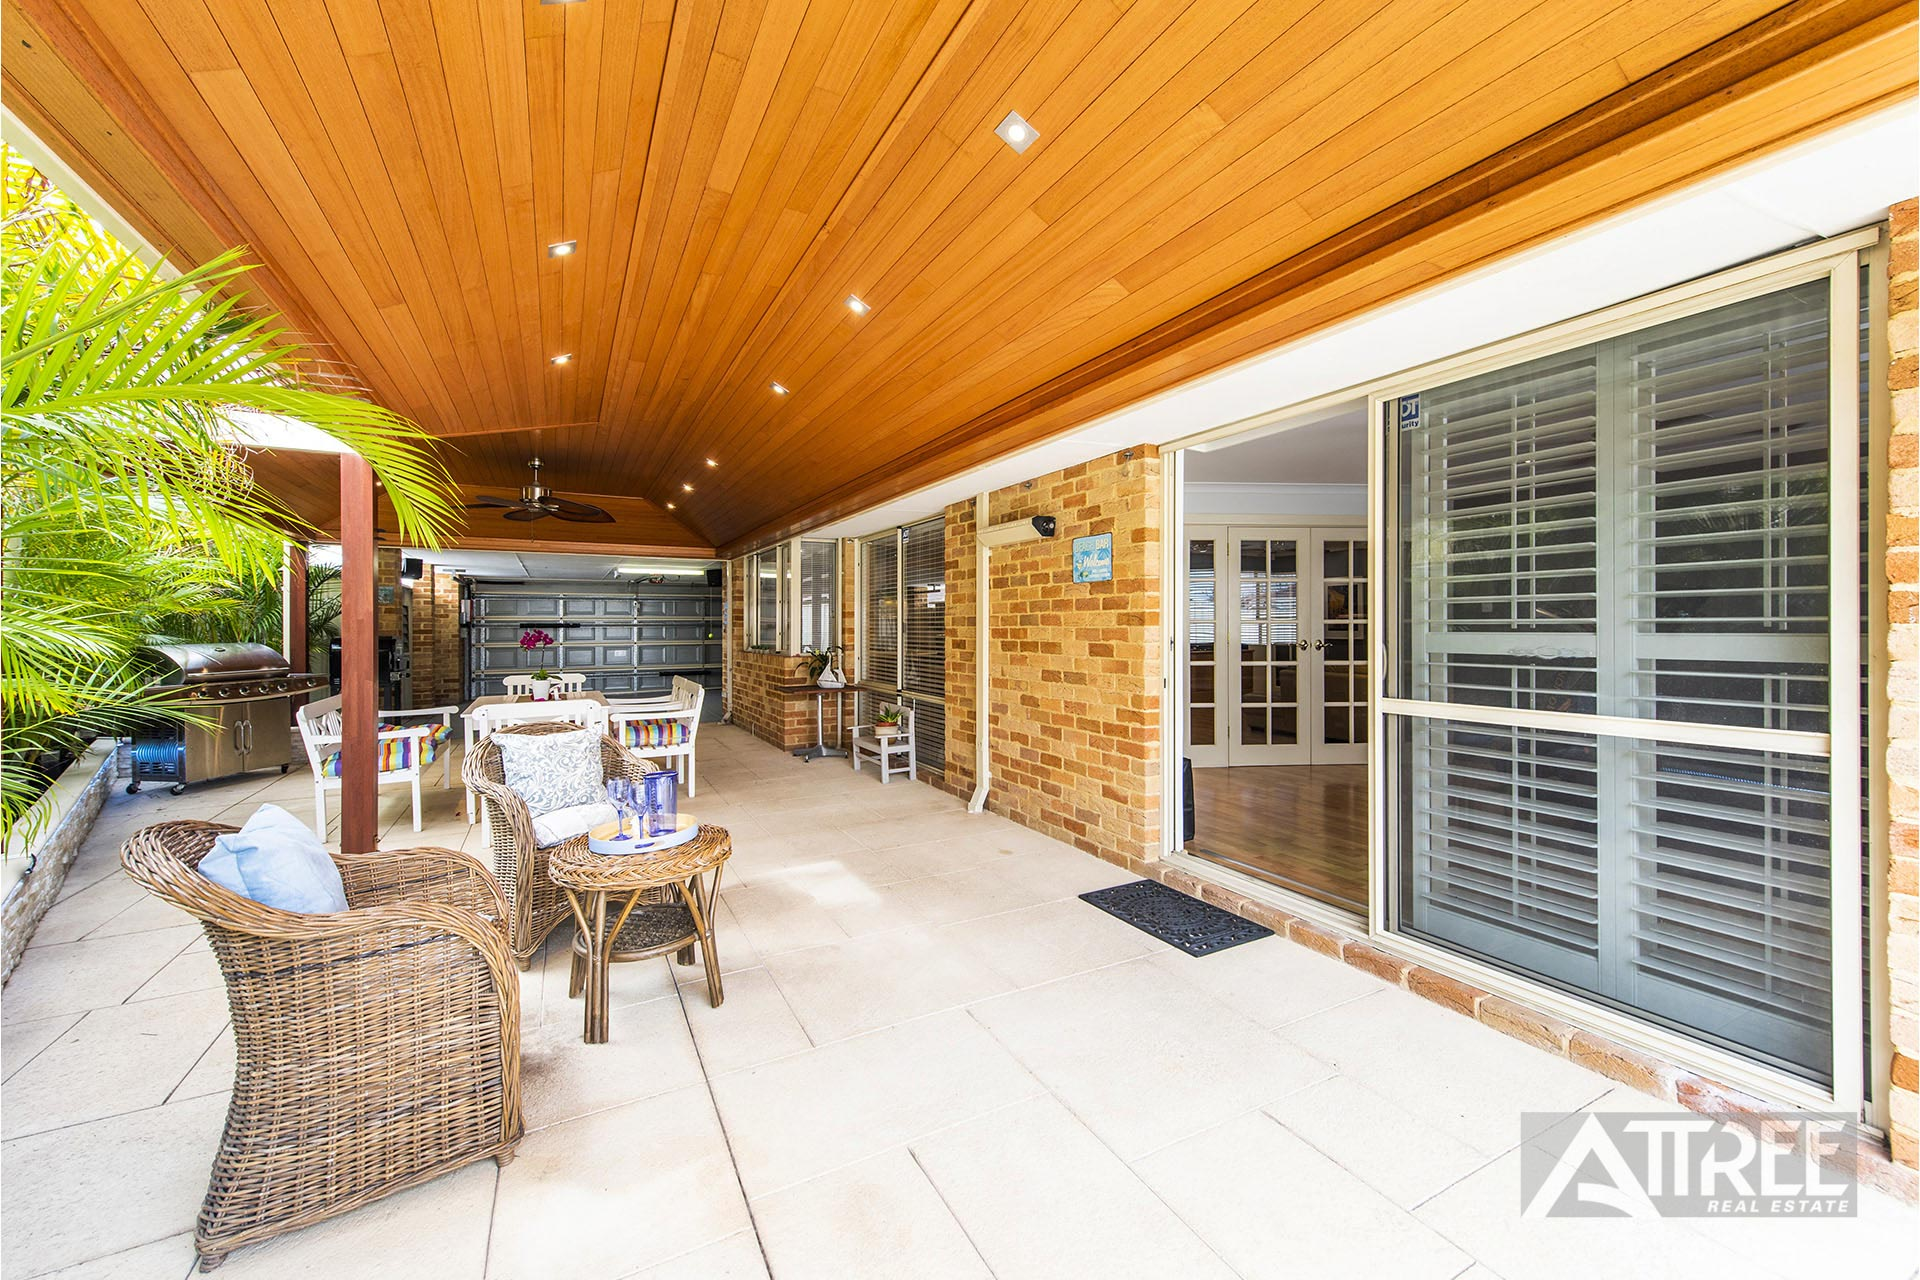 Property for sale in THORNLIE, 3 Lily Place : Attree Real Estate